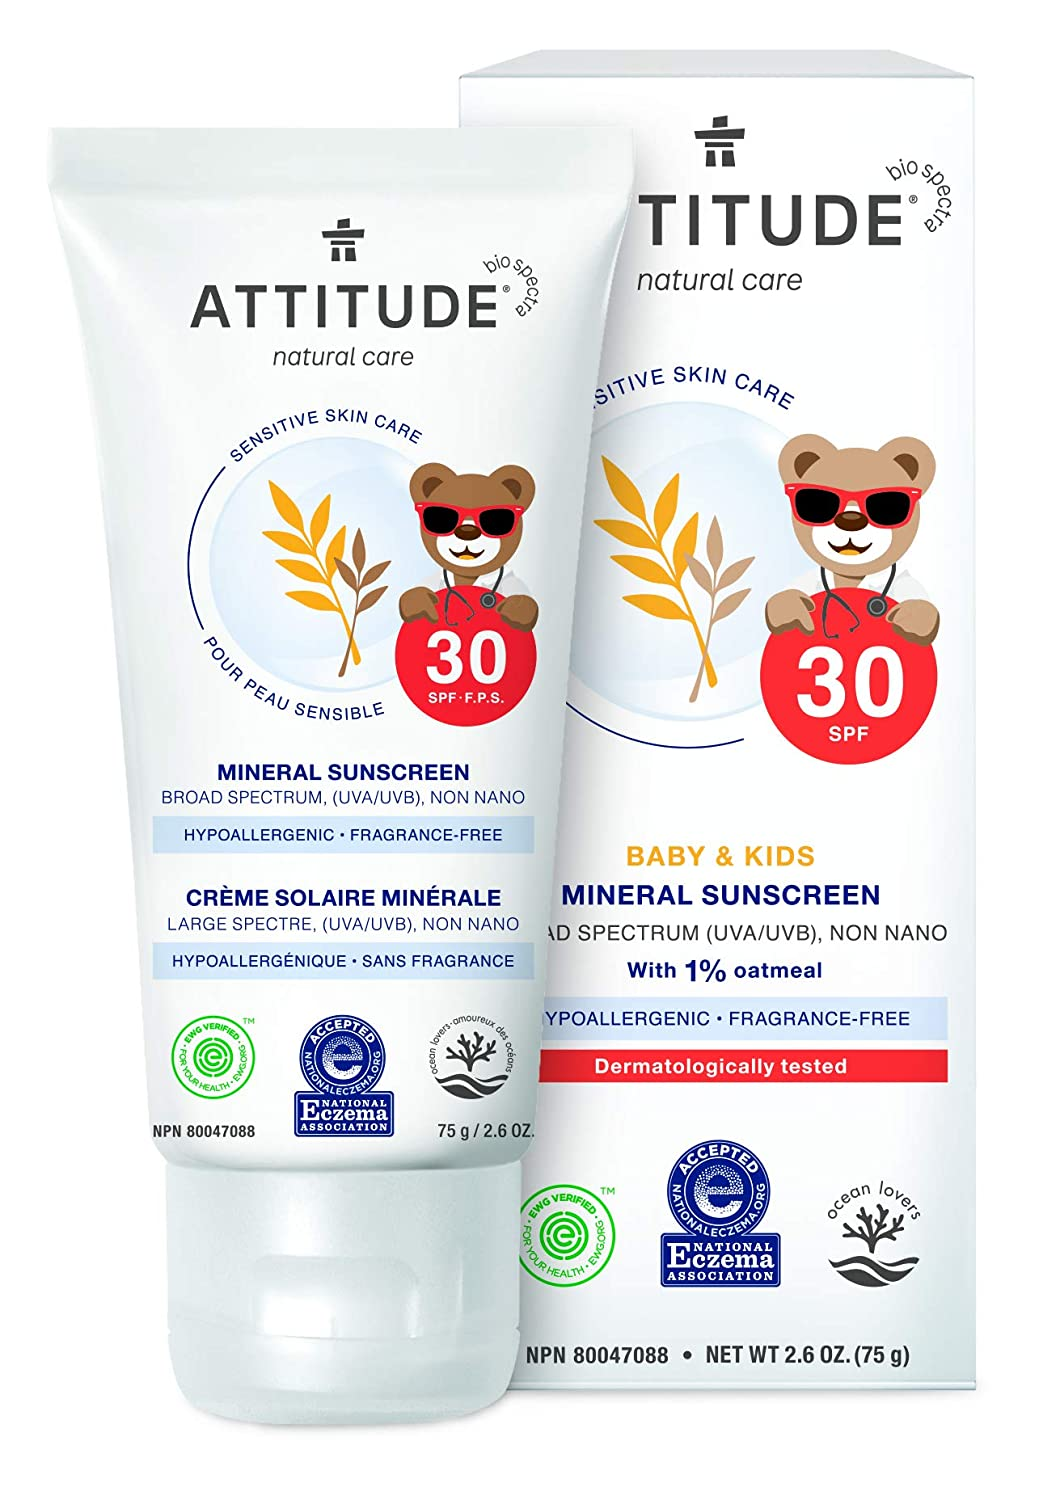 ATTITUDE Sensitive Skin, Hypoallergenic Mineral Sunscreen, SPF 30, Fragrance Free, 2.6 oz